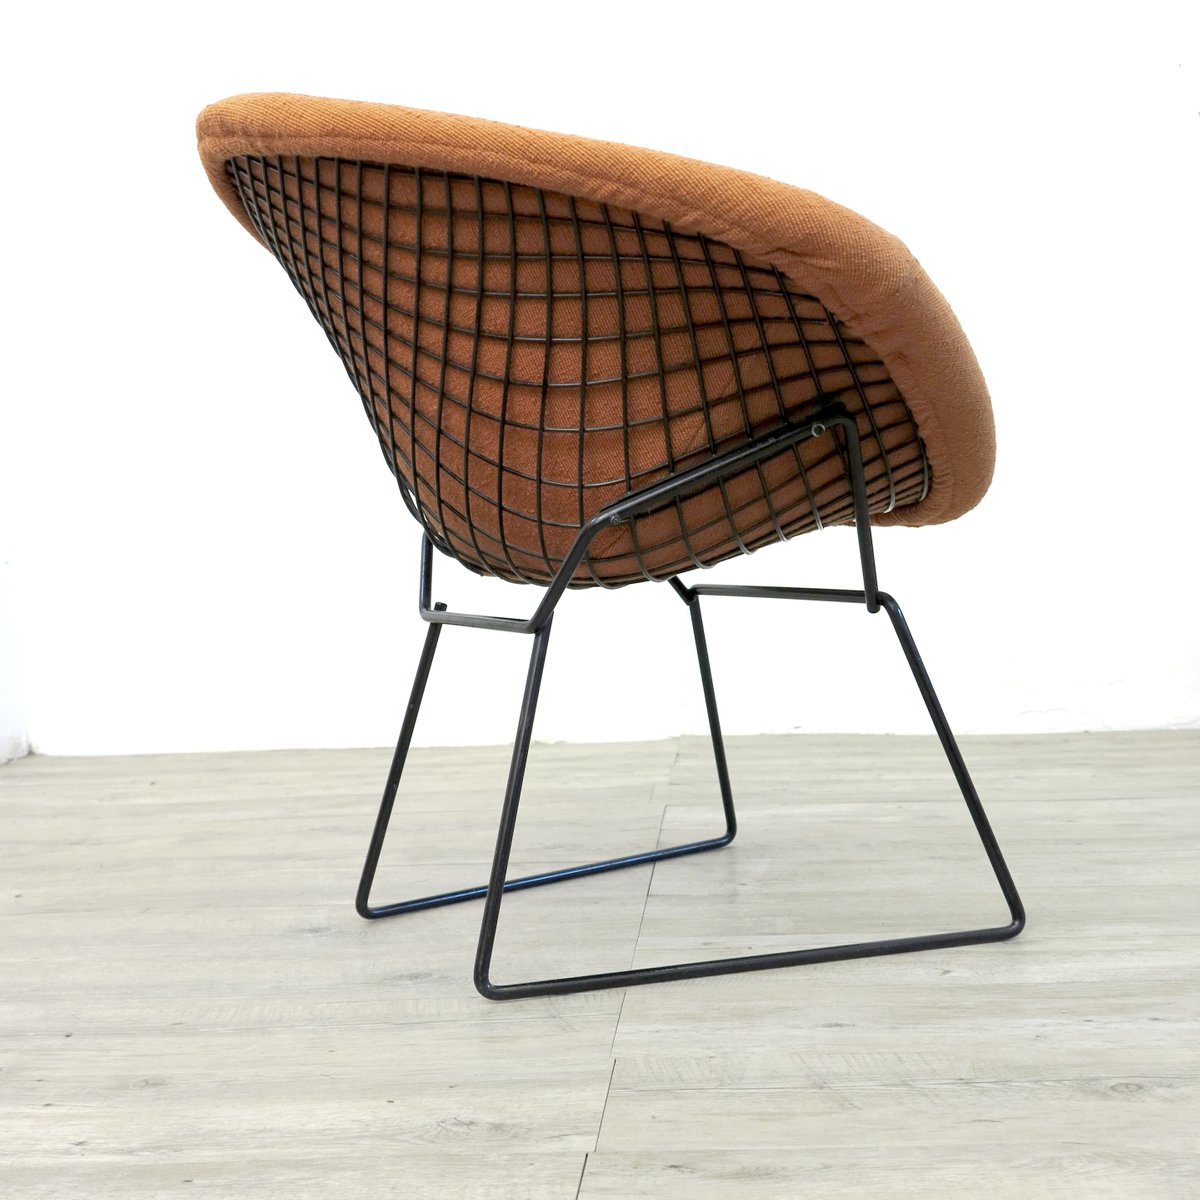 Harry Bertoia Chair Vintage Diamond Chair By Harry Bertoia For Knoll 1970s